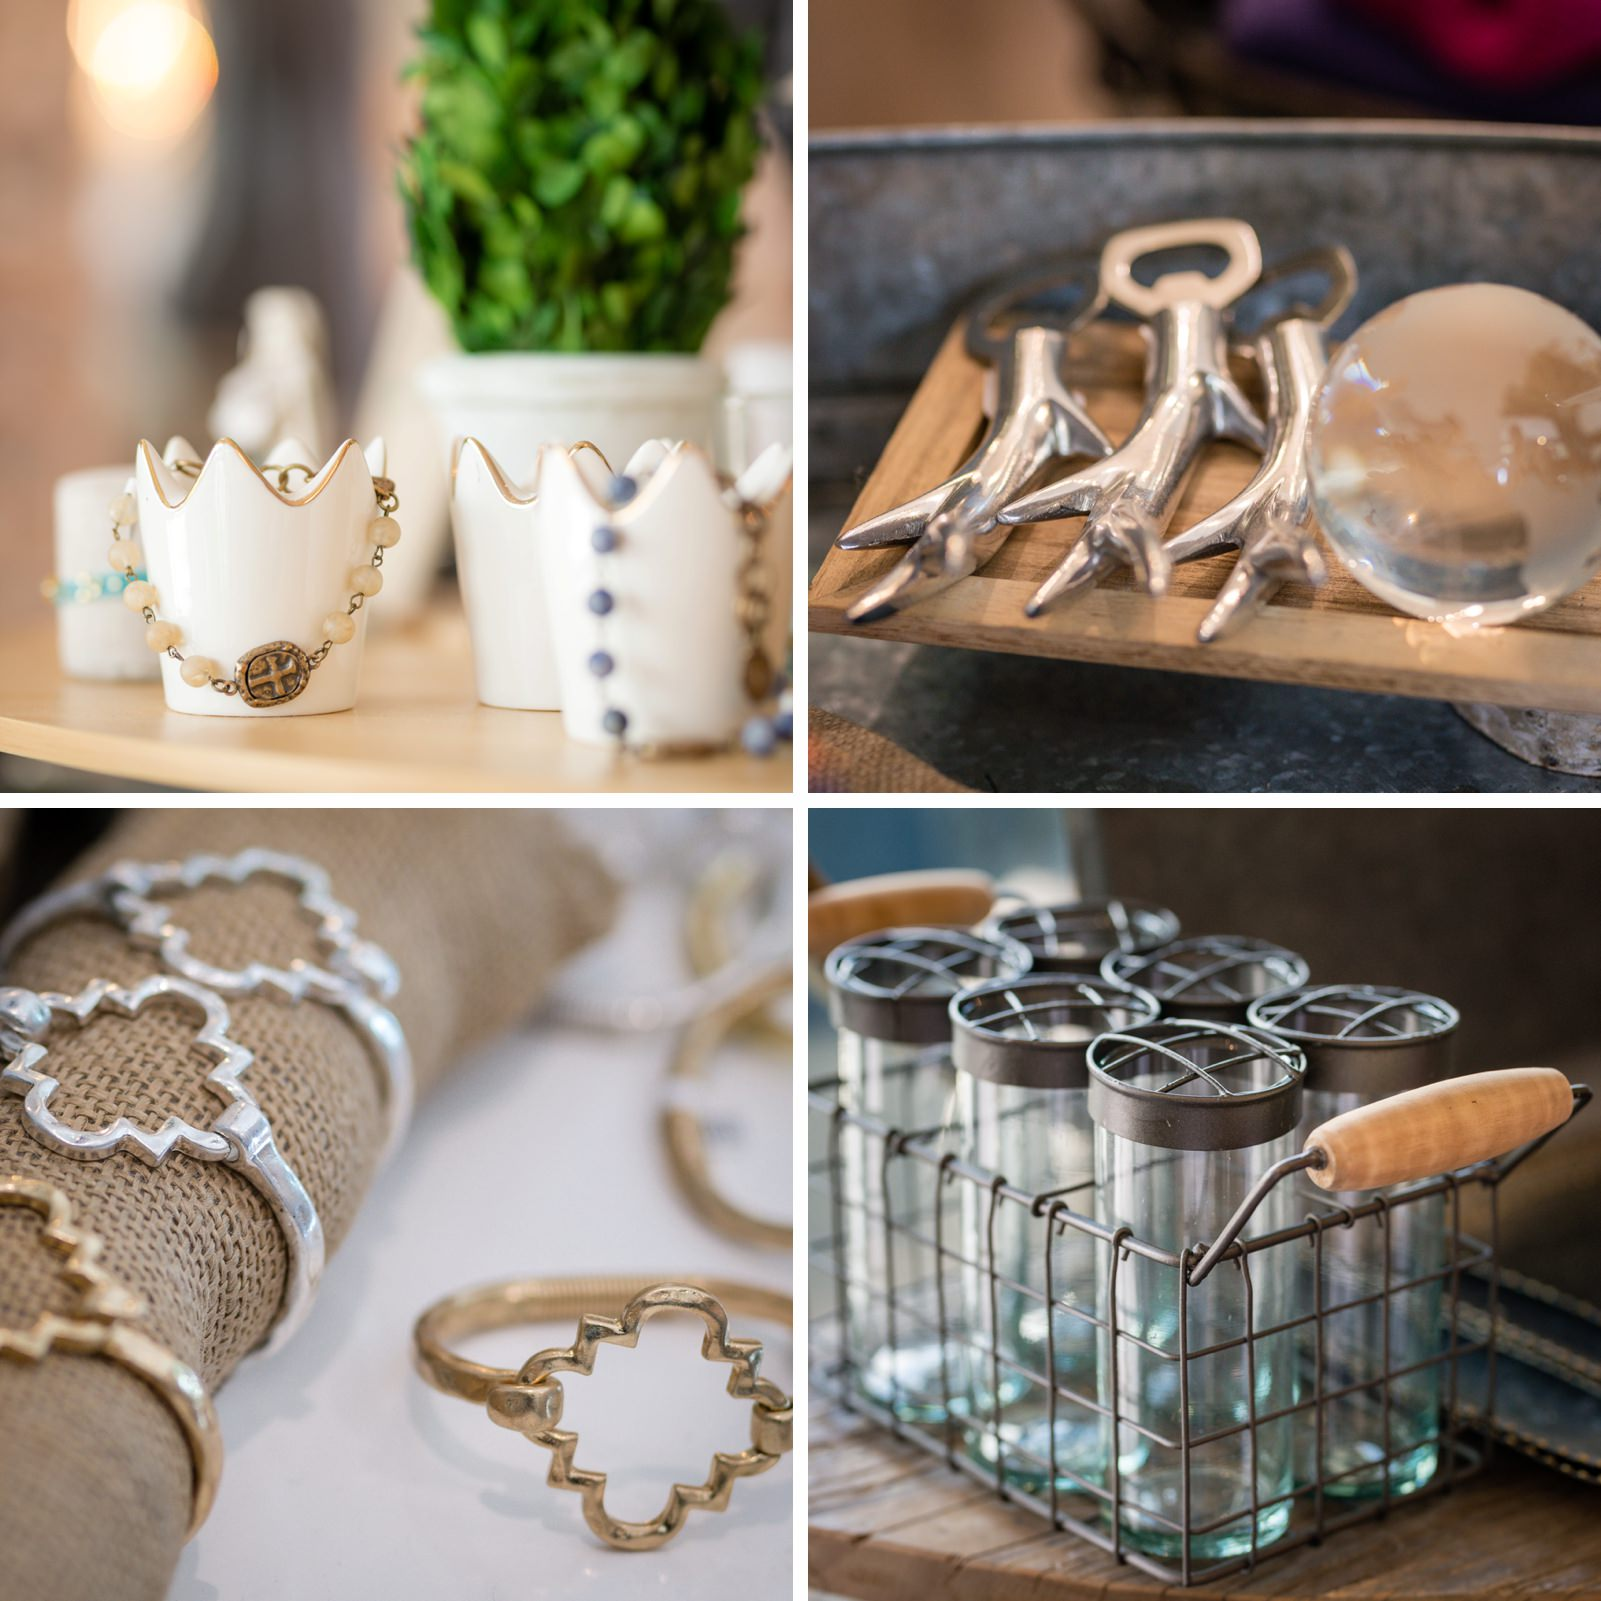 Bracelets, vases and antler bottle opener gifts at Raine Boutique Brentwood product photography